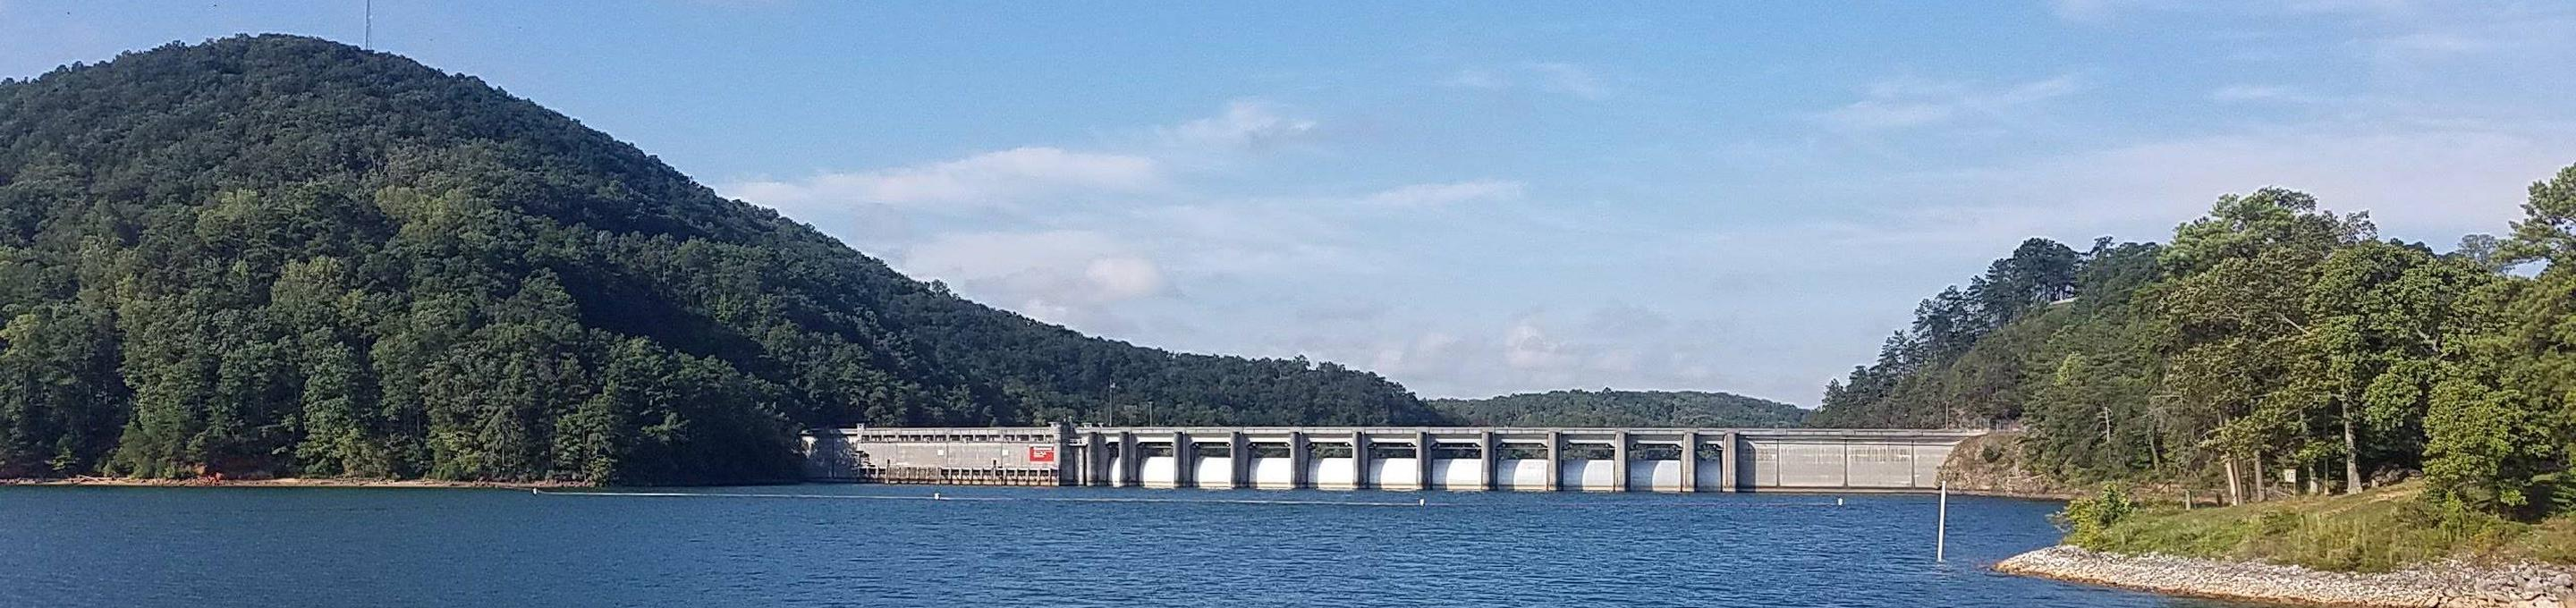 Allatoona Dam and LakeAllatoona Dam as seen from Bartow Gatewood Park